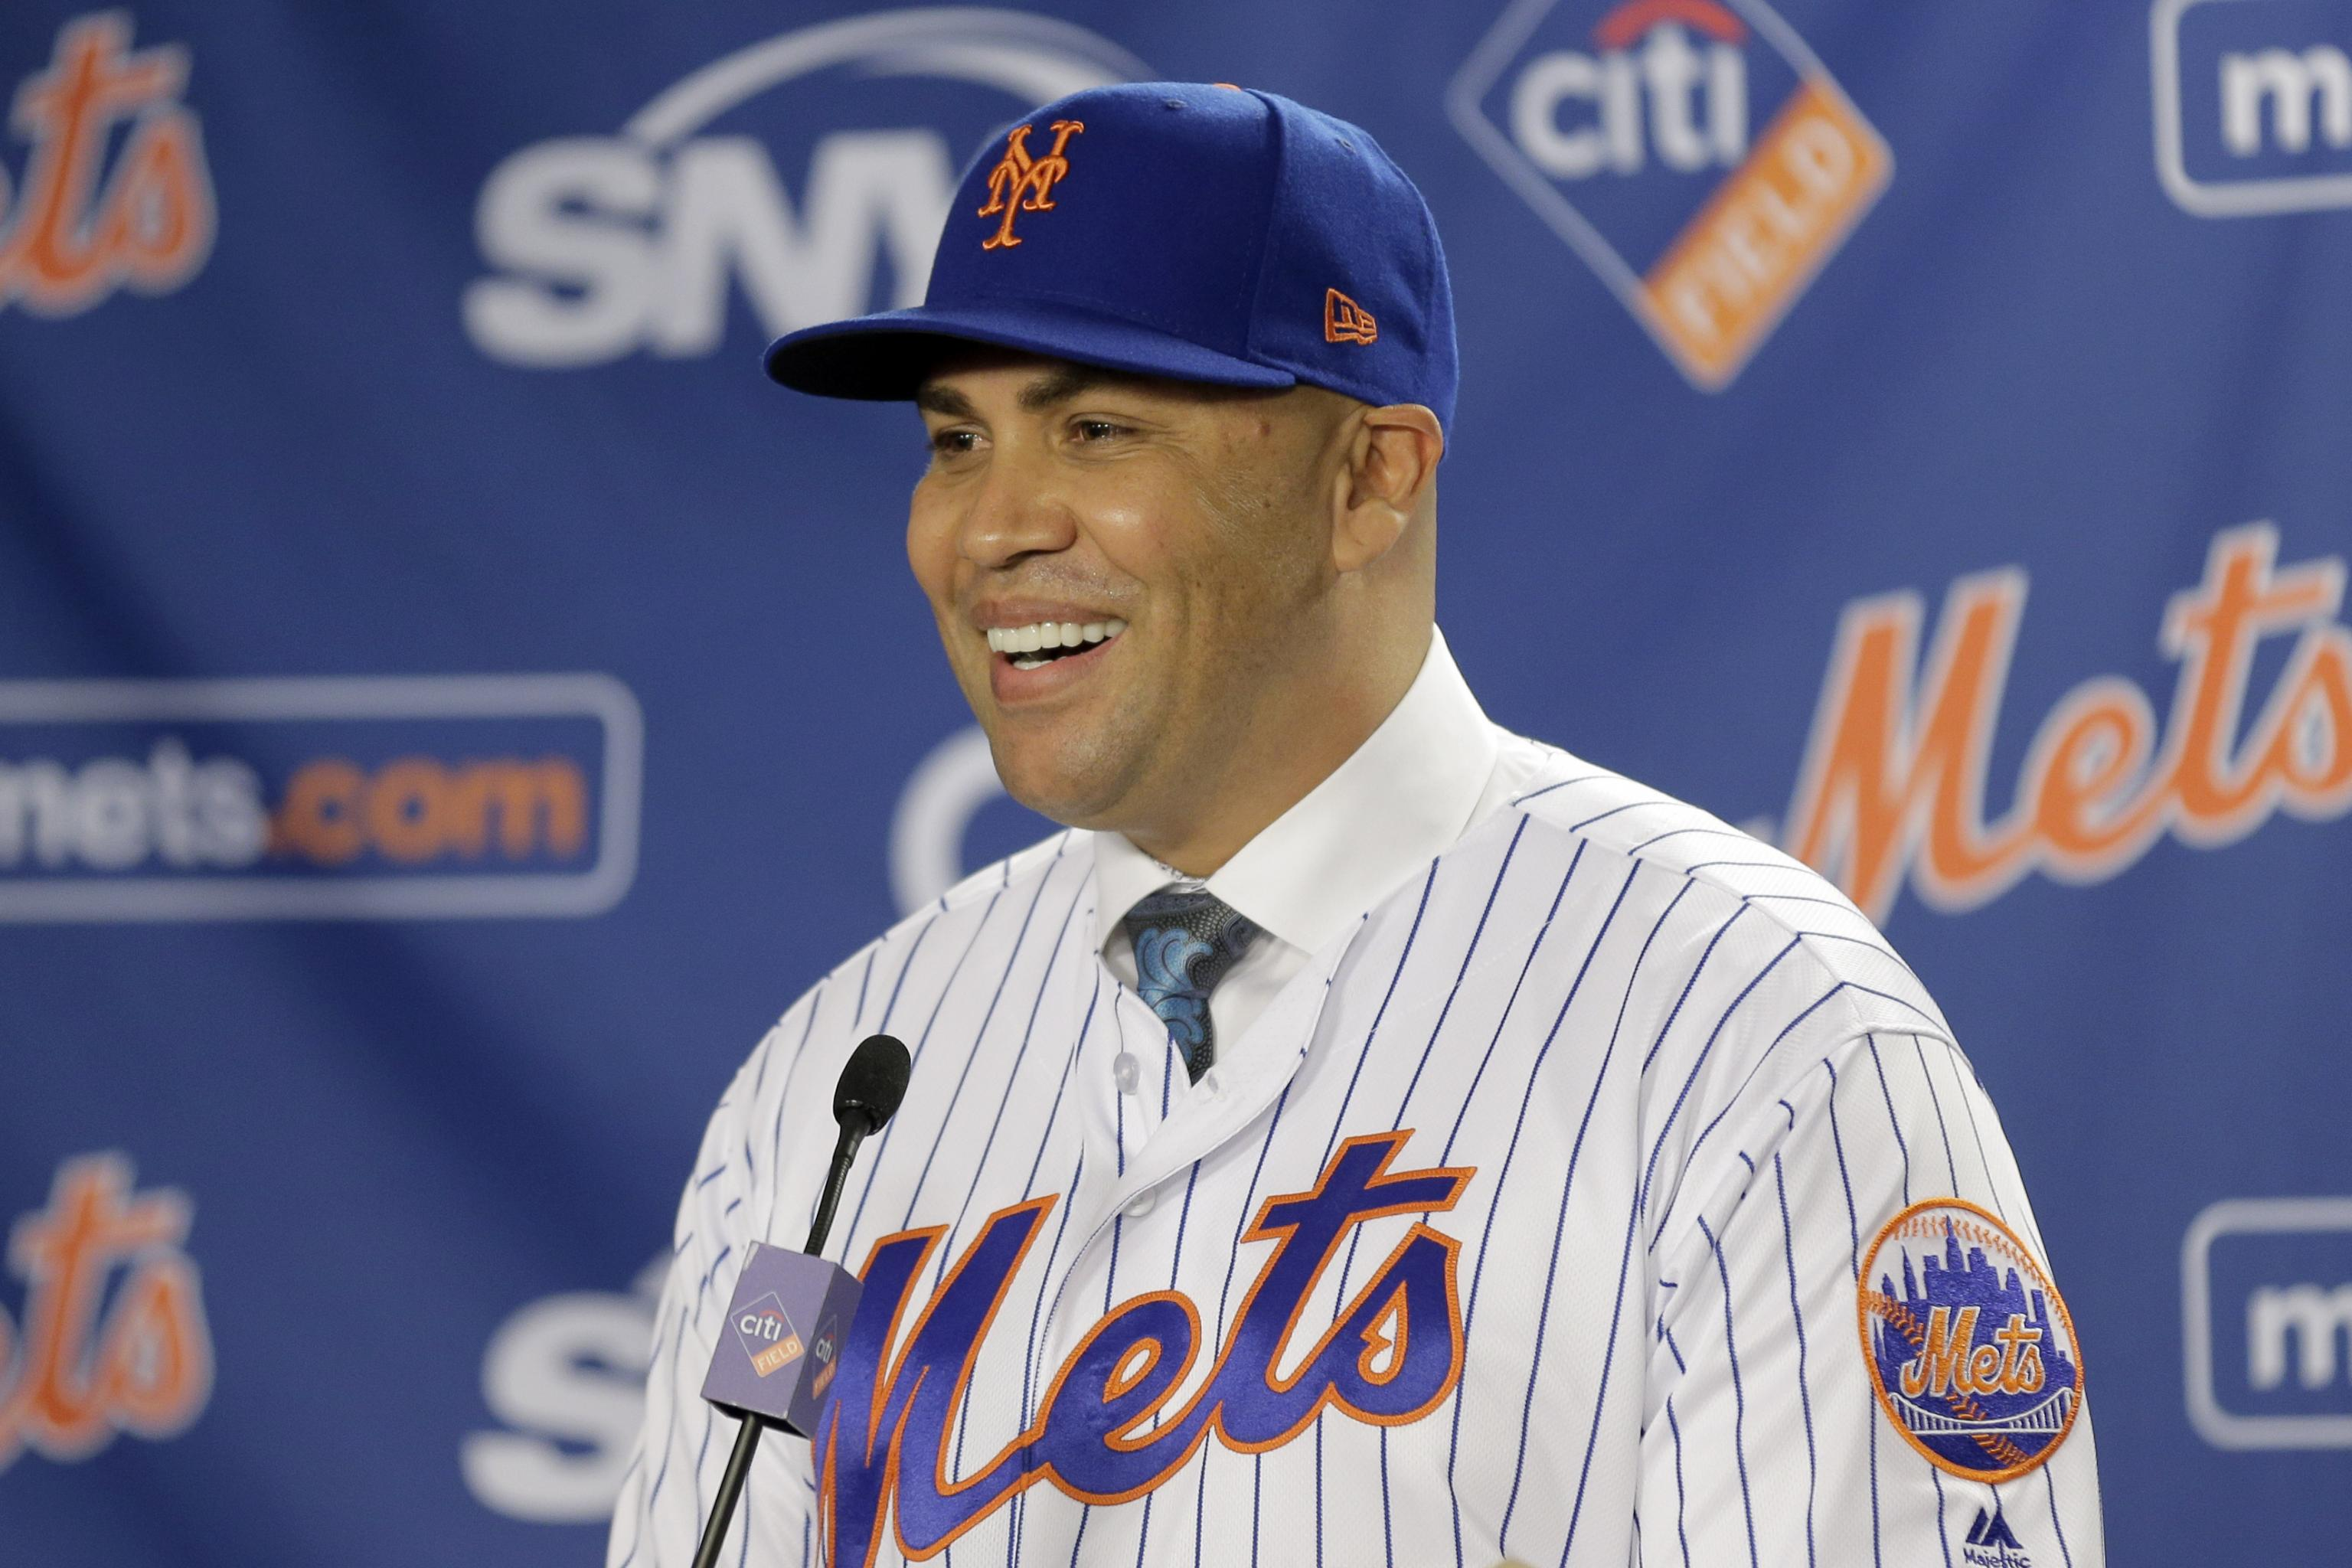 Mets Rumors Nym Wavering On Manager Carlos Beltran Amid